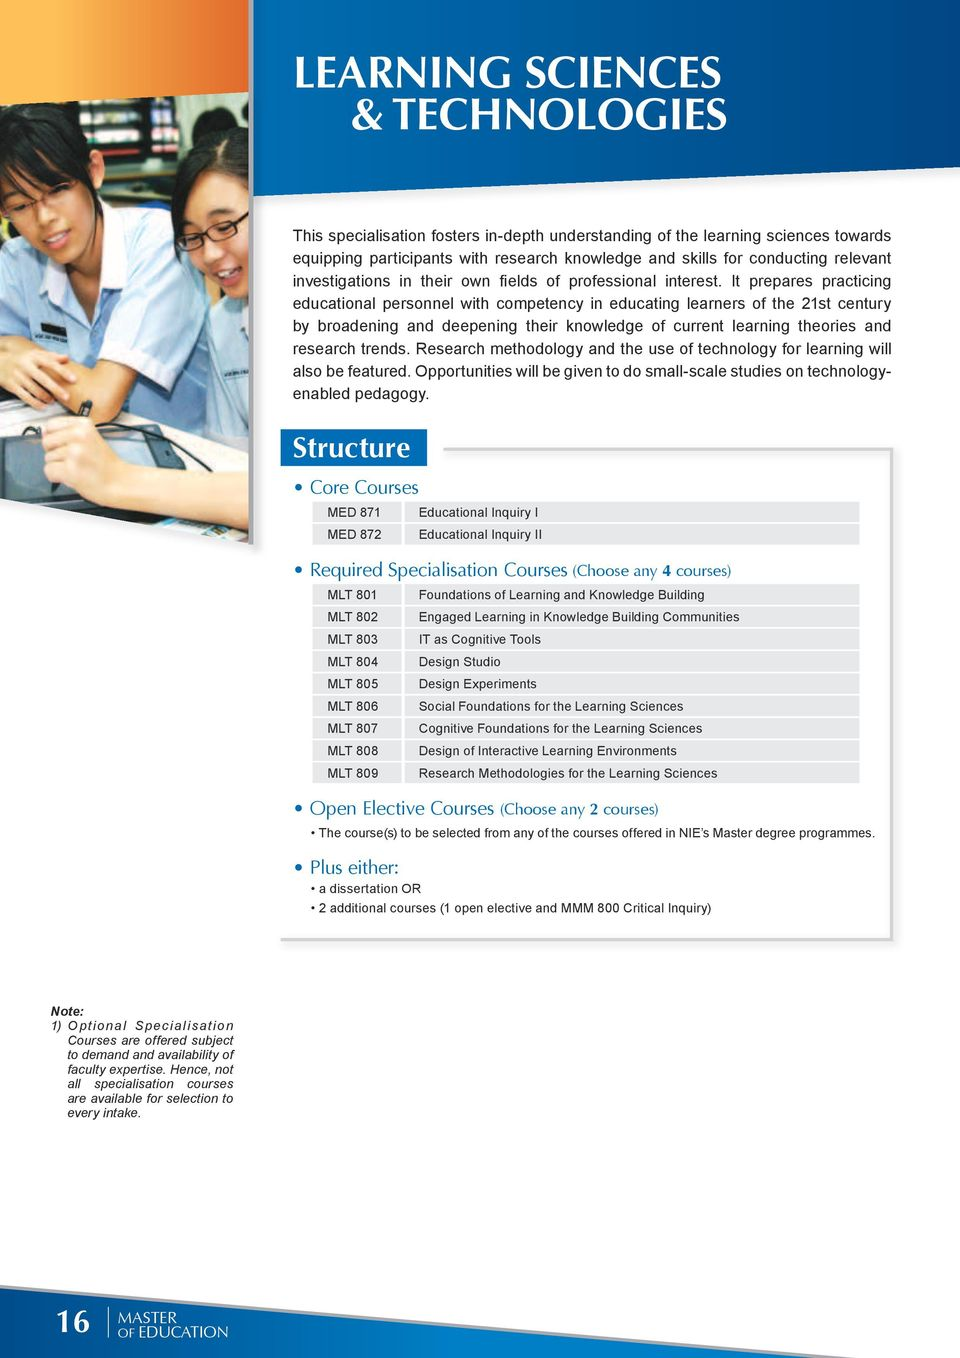 It prepares practicing educational personnel with competency in educating learners of the 21st century by broadening and deepening their knowledge of current learning theories and research trends.